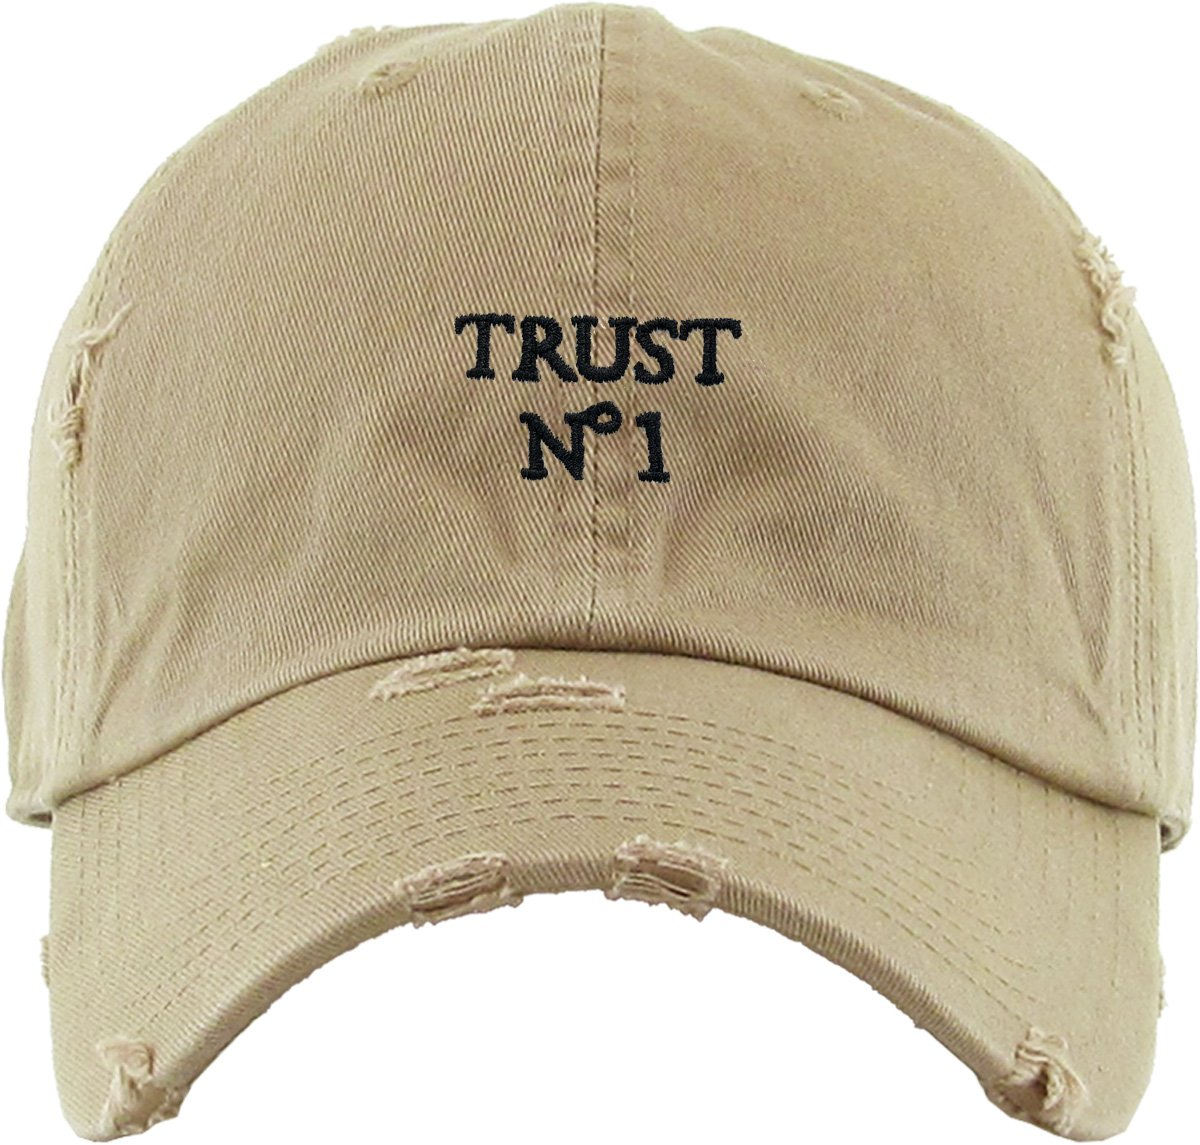 KBETHOS KBSV-055 KHK Trust No1 Vintage Distressed Dad Hat Baseball Cap Polo  Style   Shops   Clothing f23e4cddb192